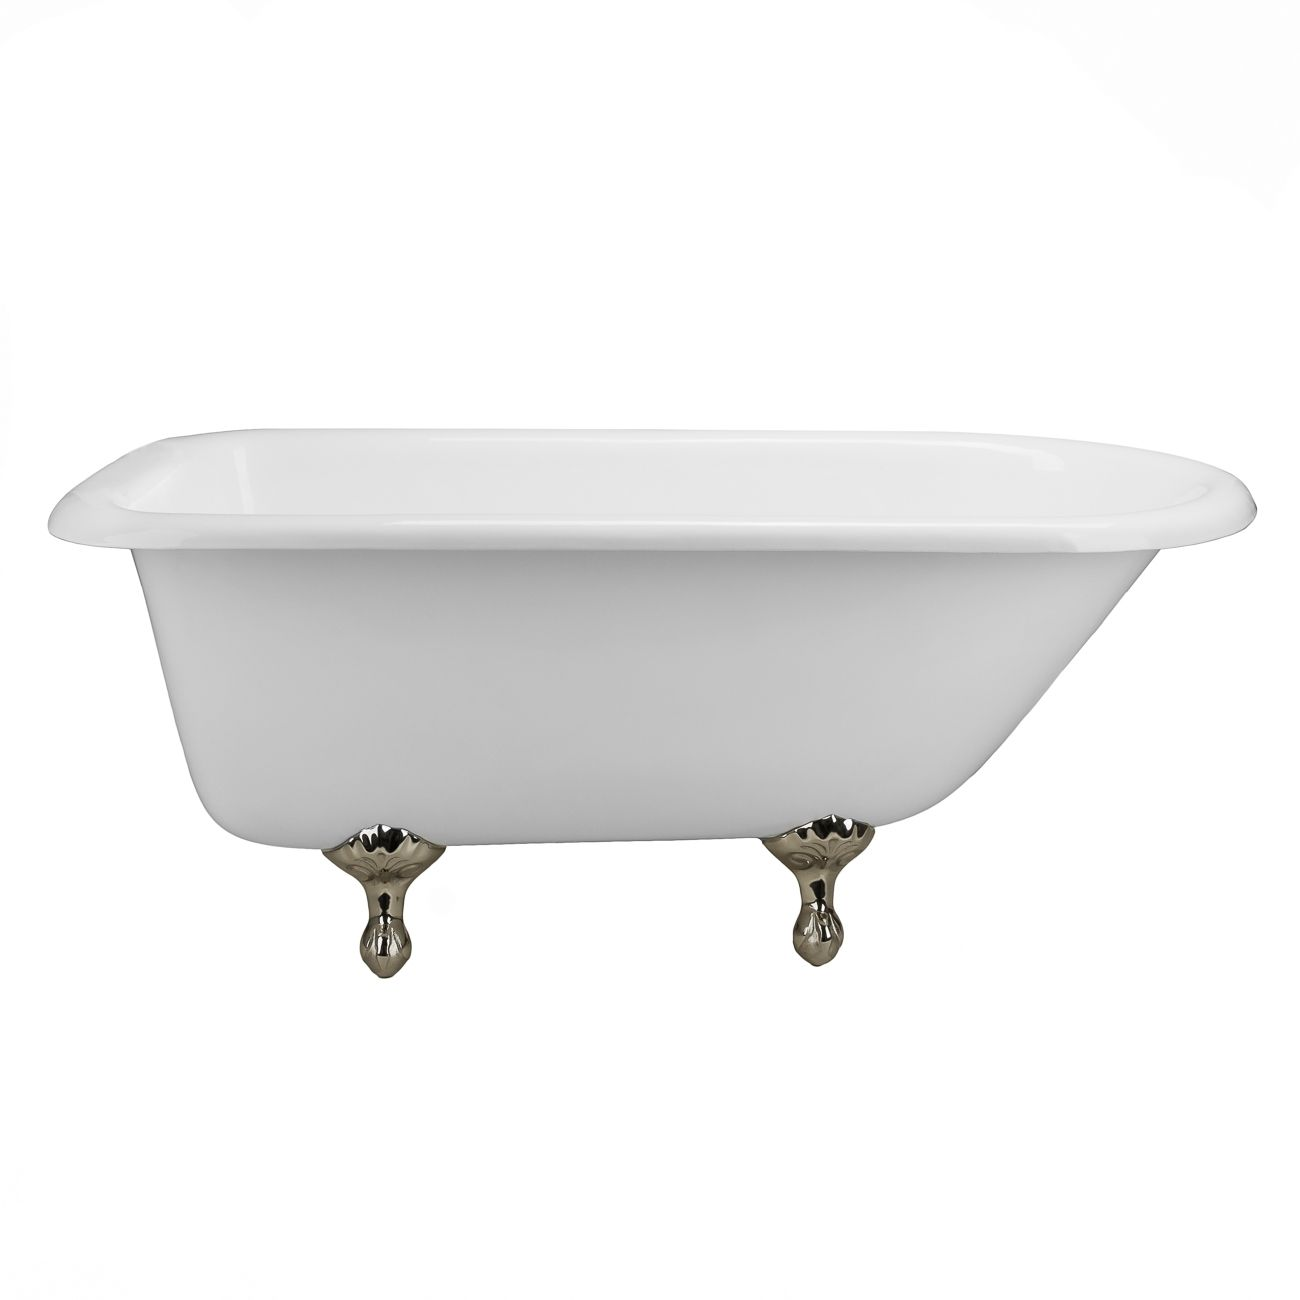 Heritage 54 inch cast iron classic clawfoot tub - no faucet drillings